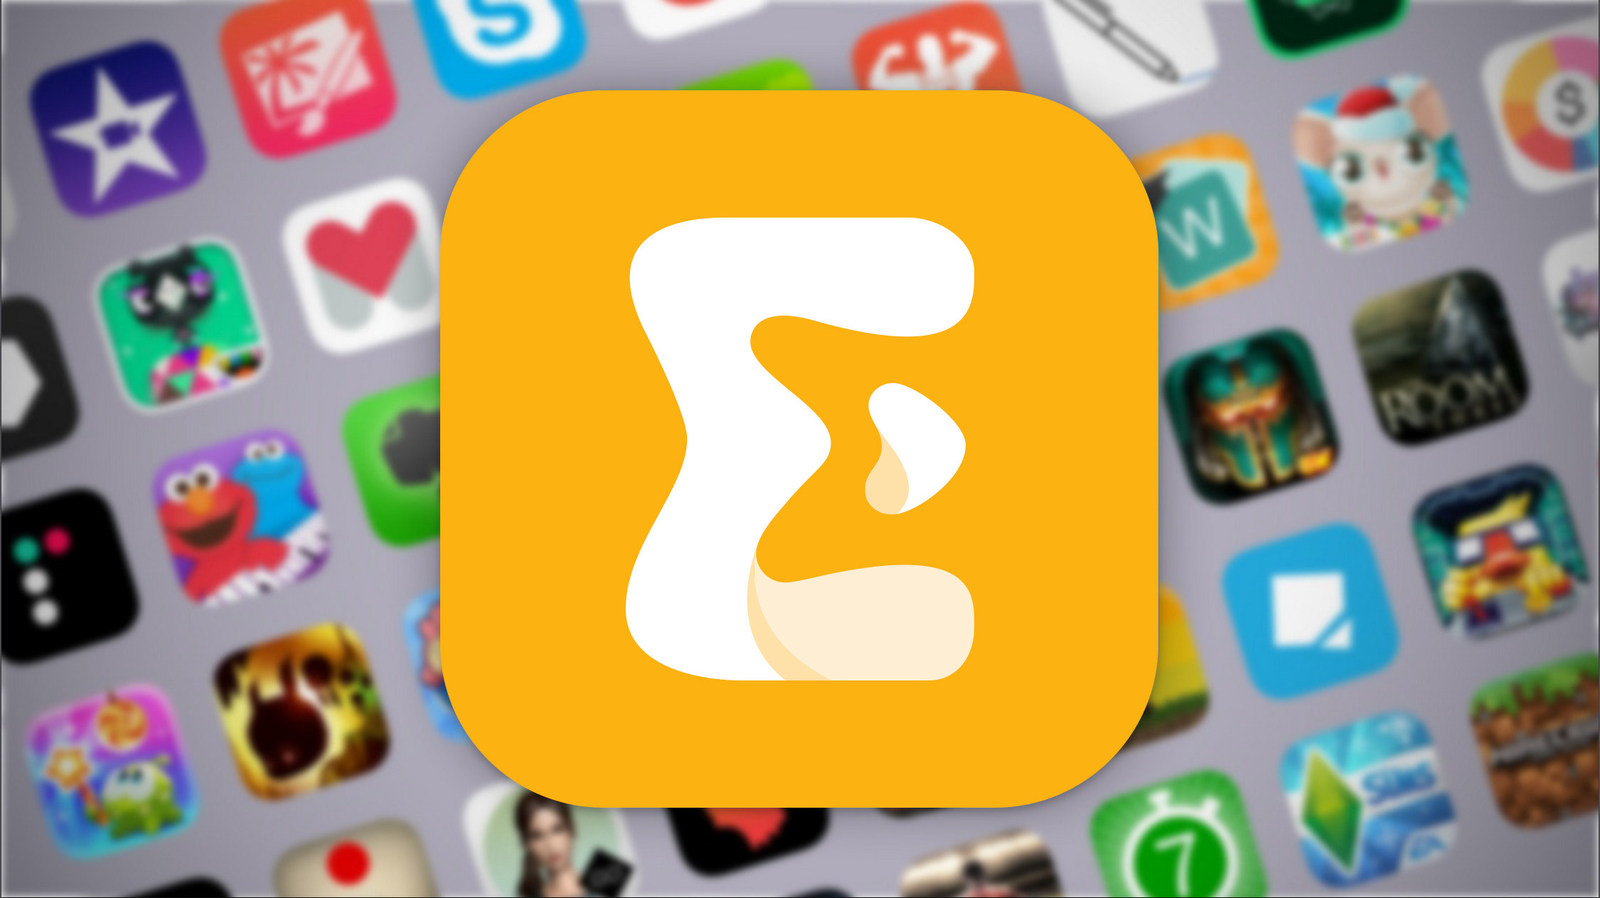 Following Apple's Updated Guidelines, EventMobi Gives Event Planners More Options